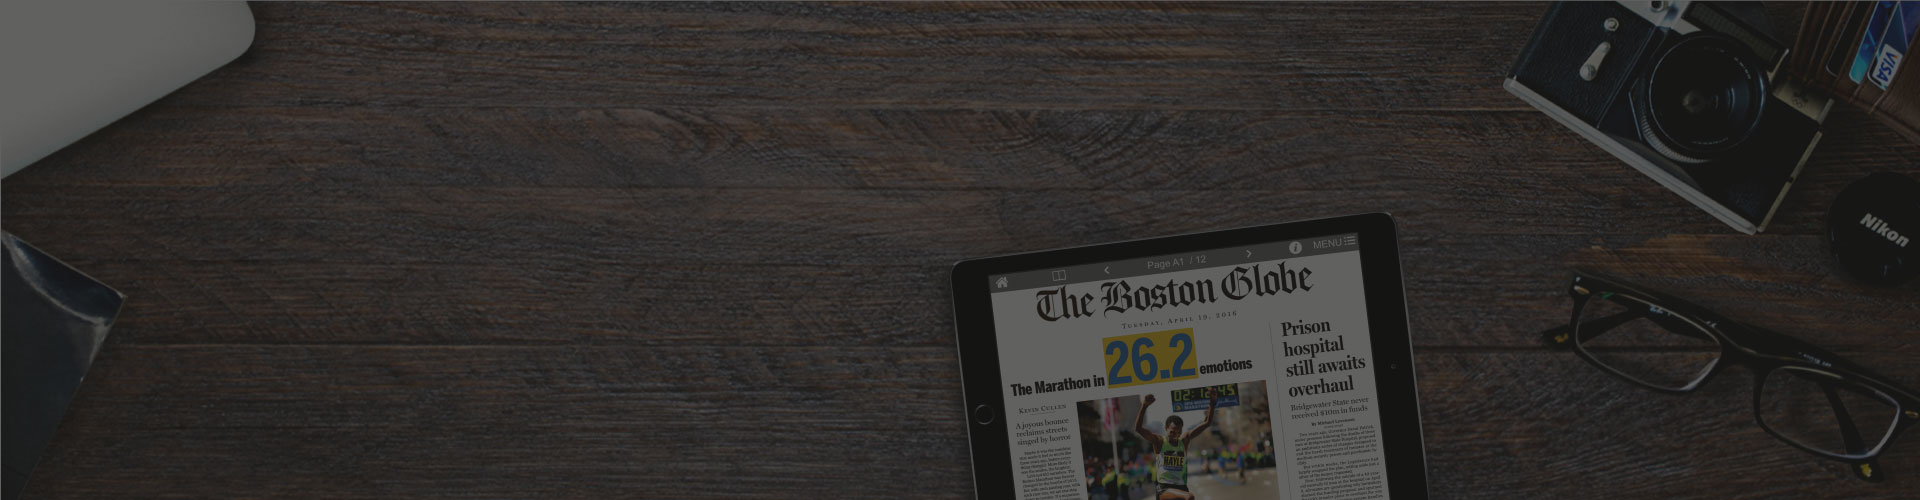 Header image of The Boston Globe